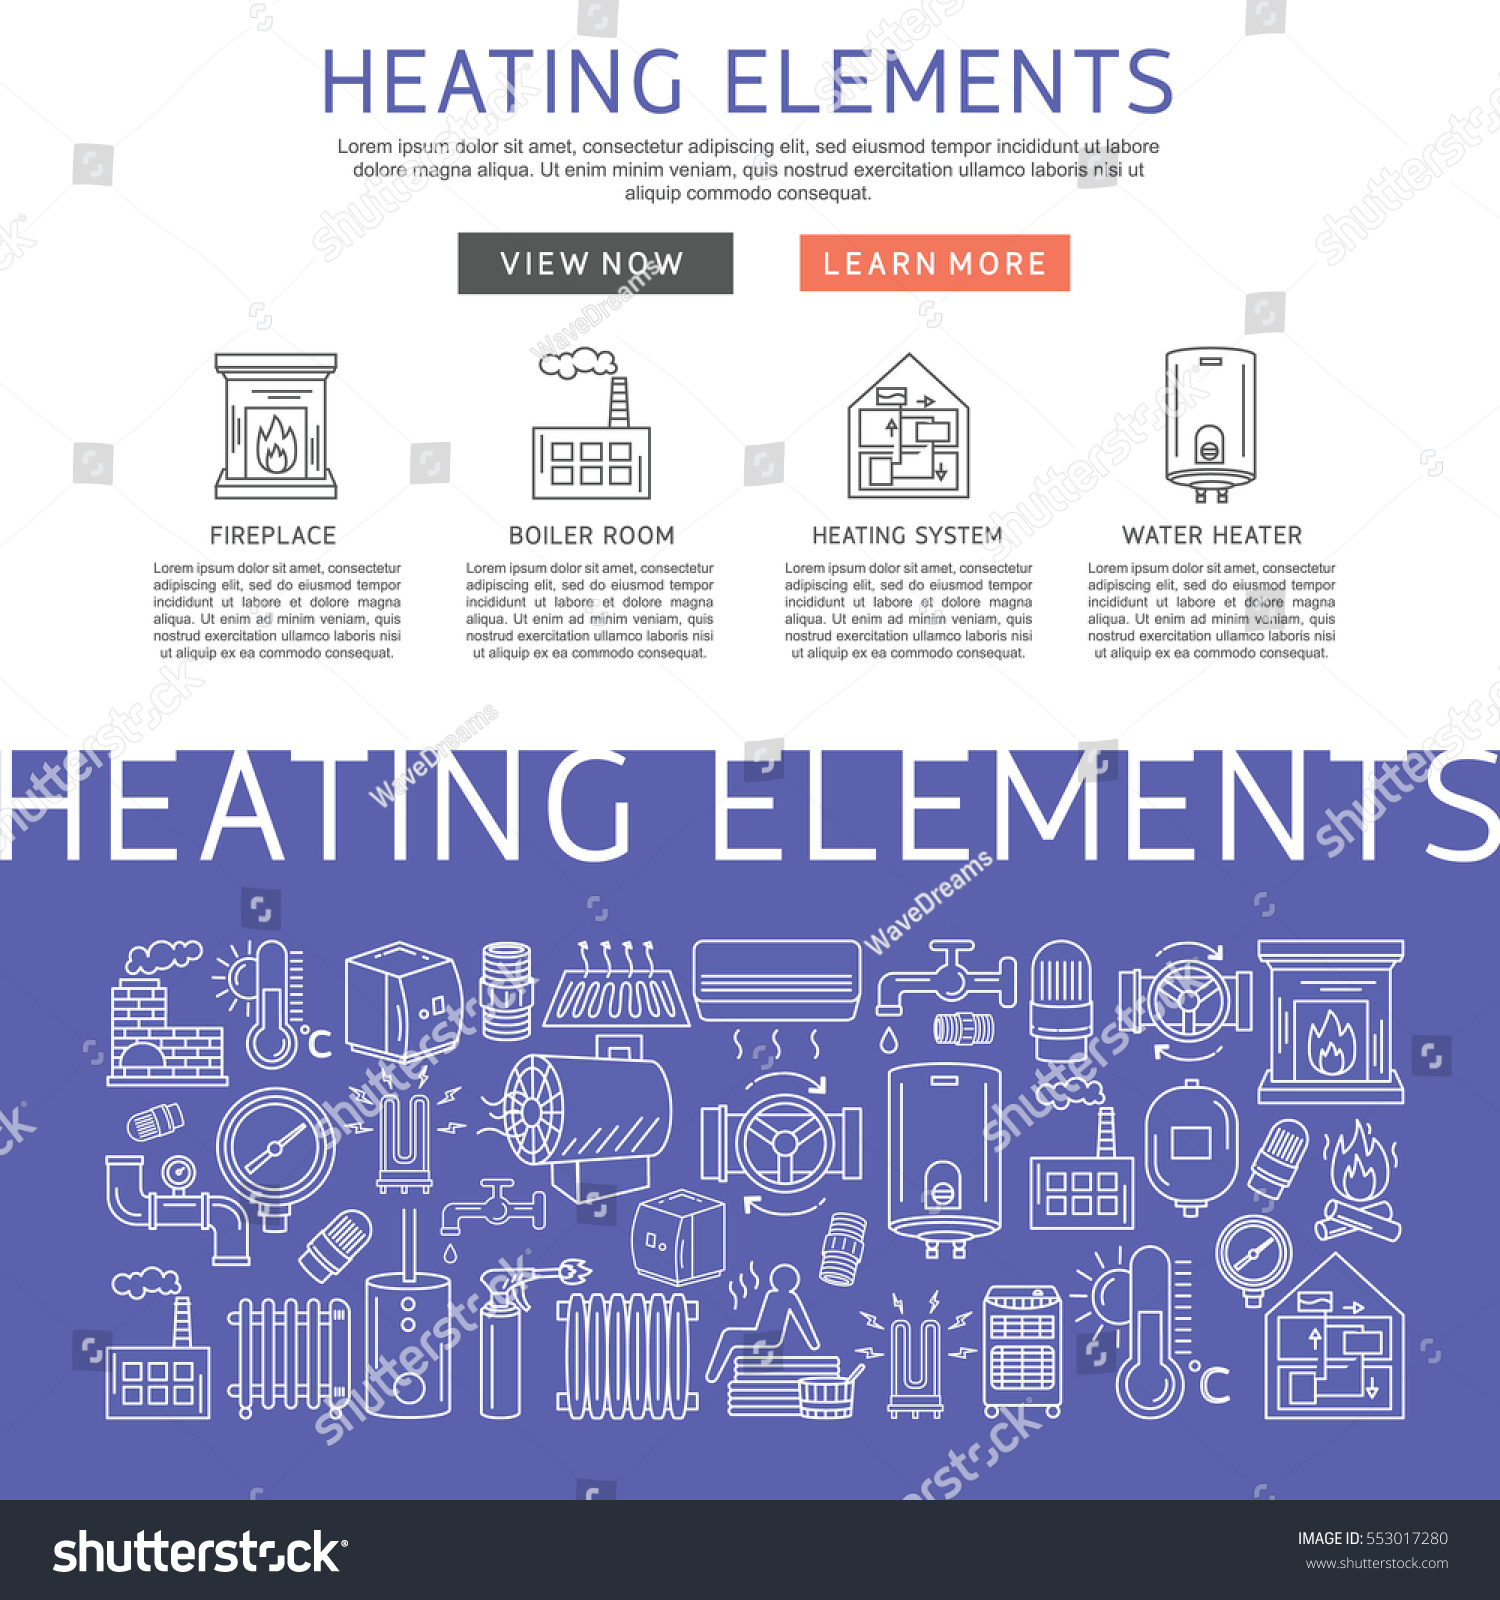 Heating elements outline vector linear stock